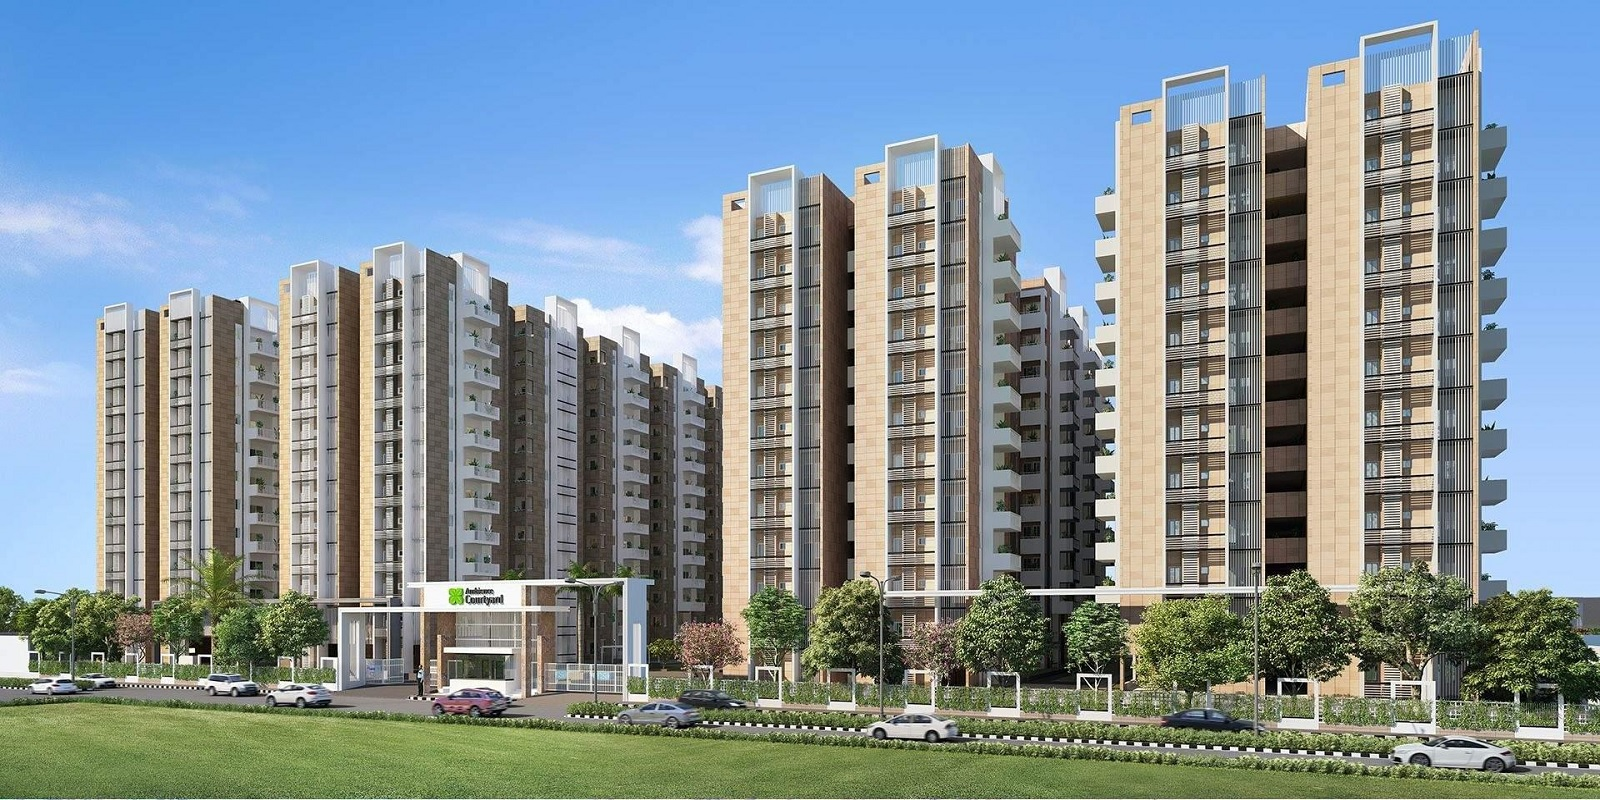 Ambience Courtyard - Price Starting @ 54.88 Lac, 2 BHK-3 BHK BHK Floor  Plans Available in Manikonda, Hyderabad